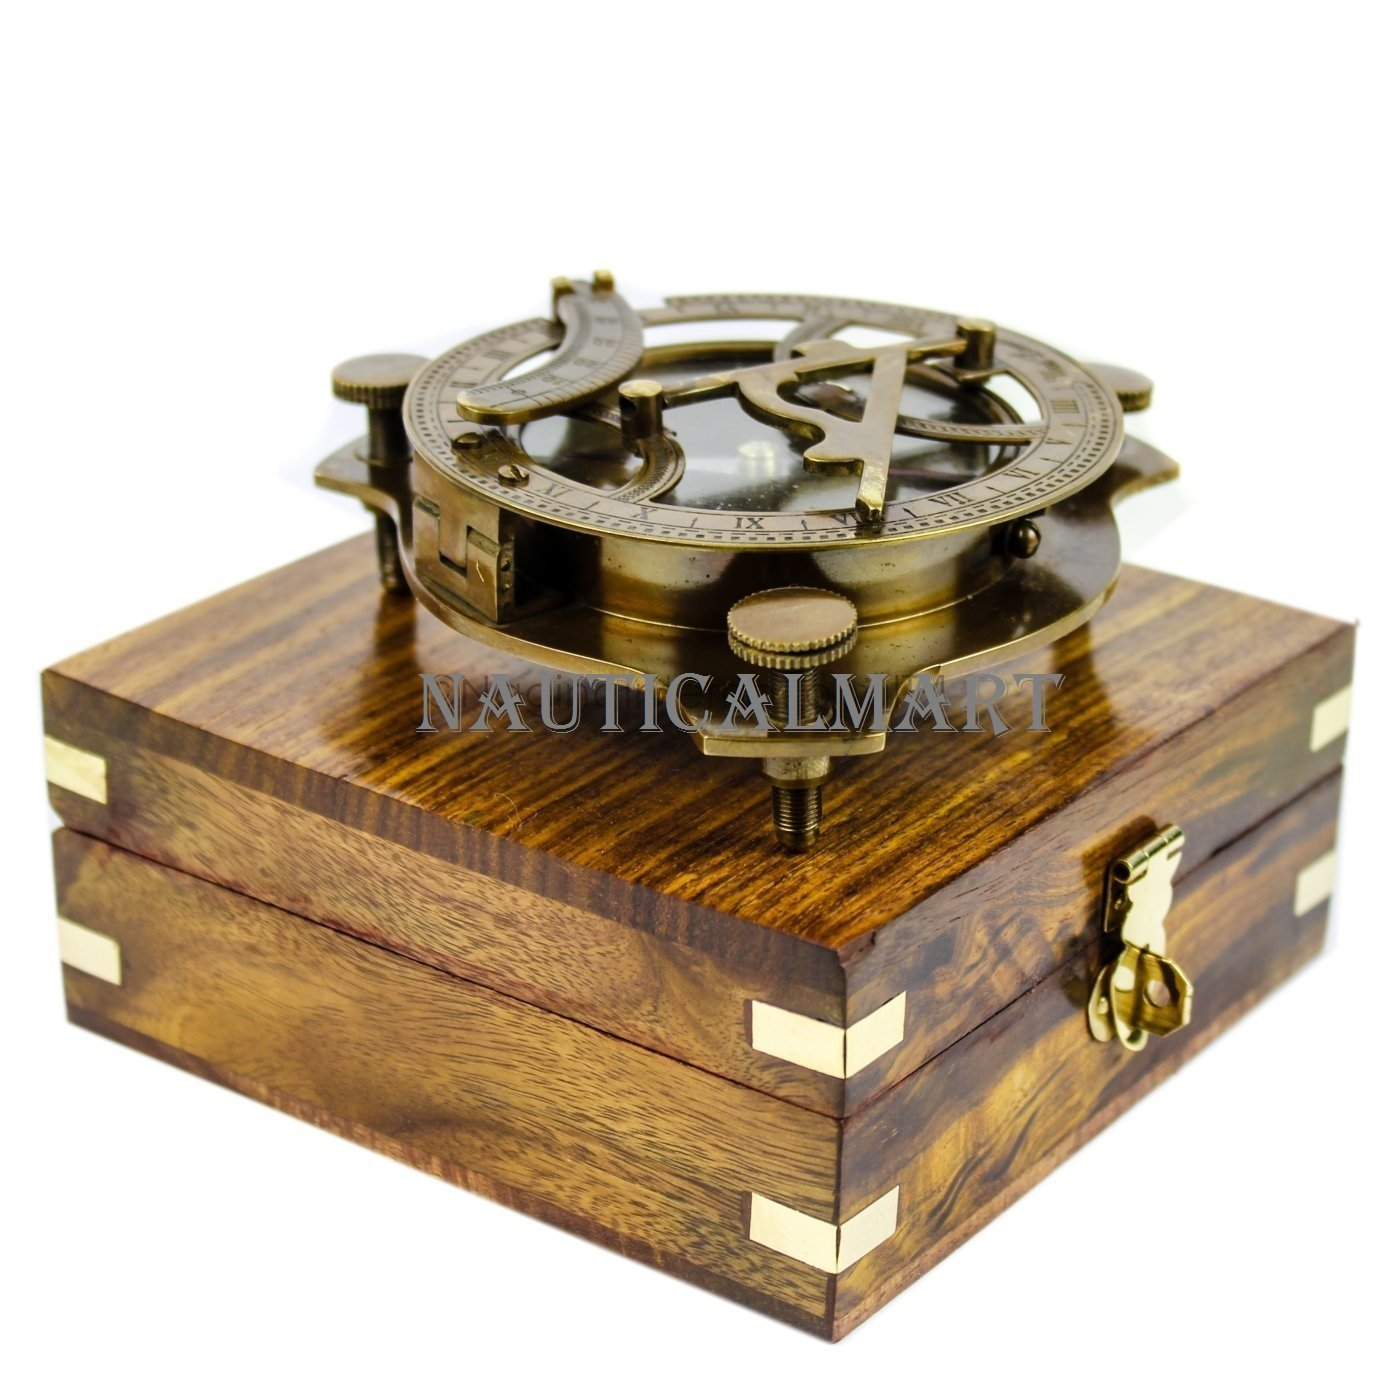 5'' Triangular Beautiful Nautical Sundial Compass With Level Meter Encased In Genuine Rosewood Anchor Inlaid Case | Maritime Decor Gifts by NAUTICALMART